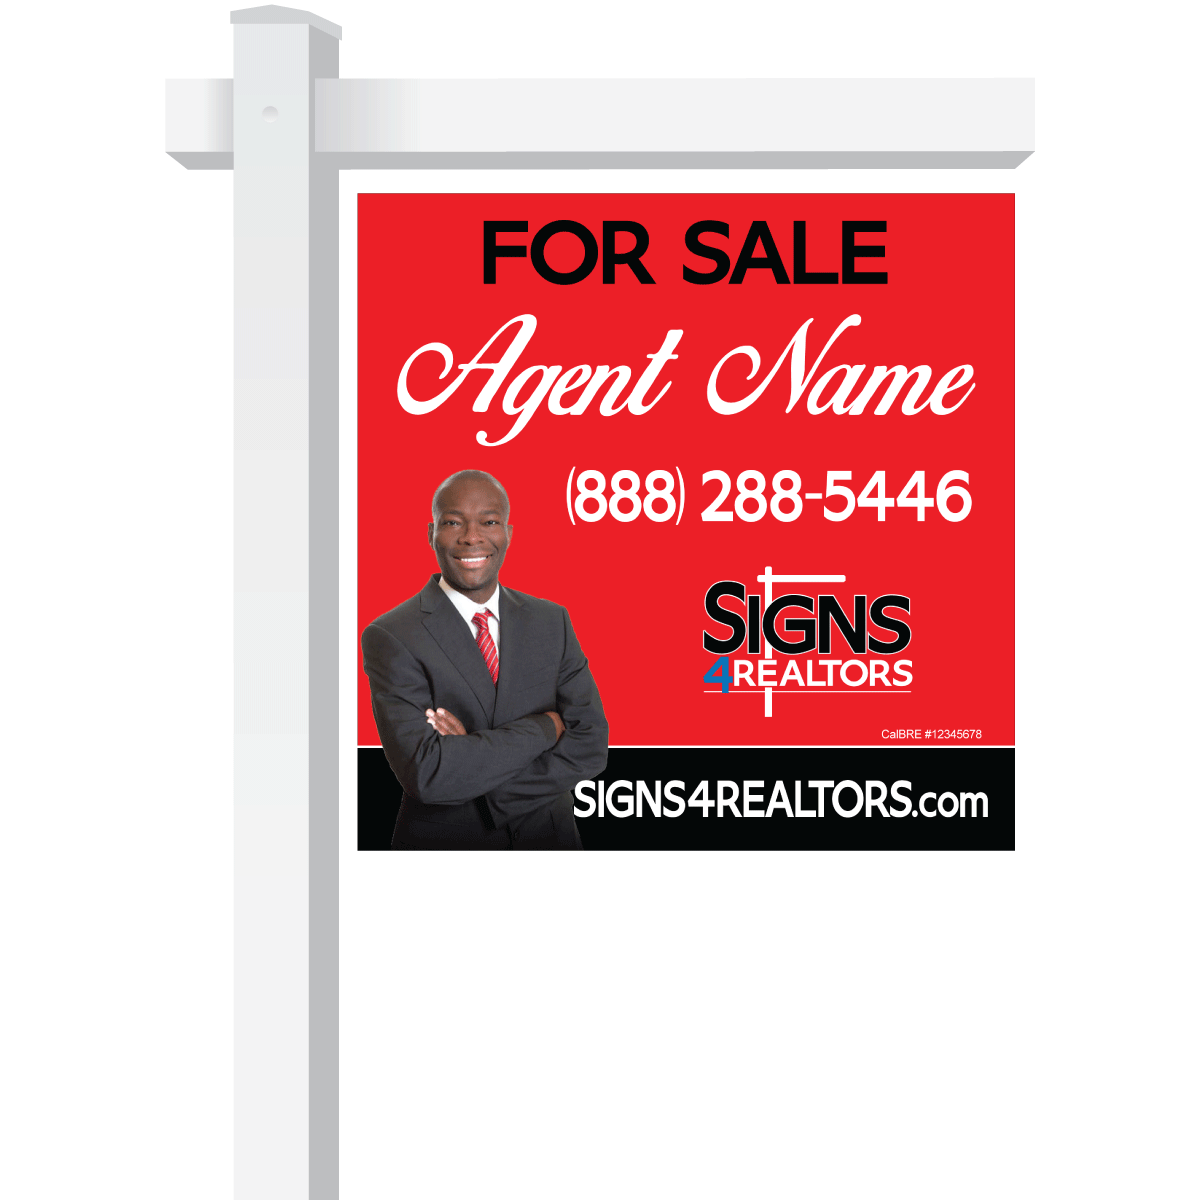 forsale sign